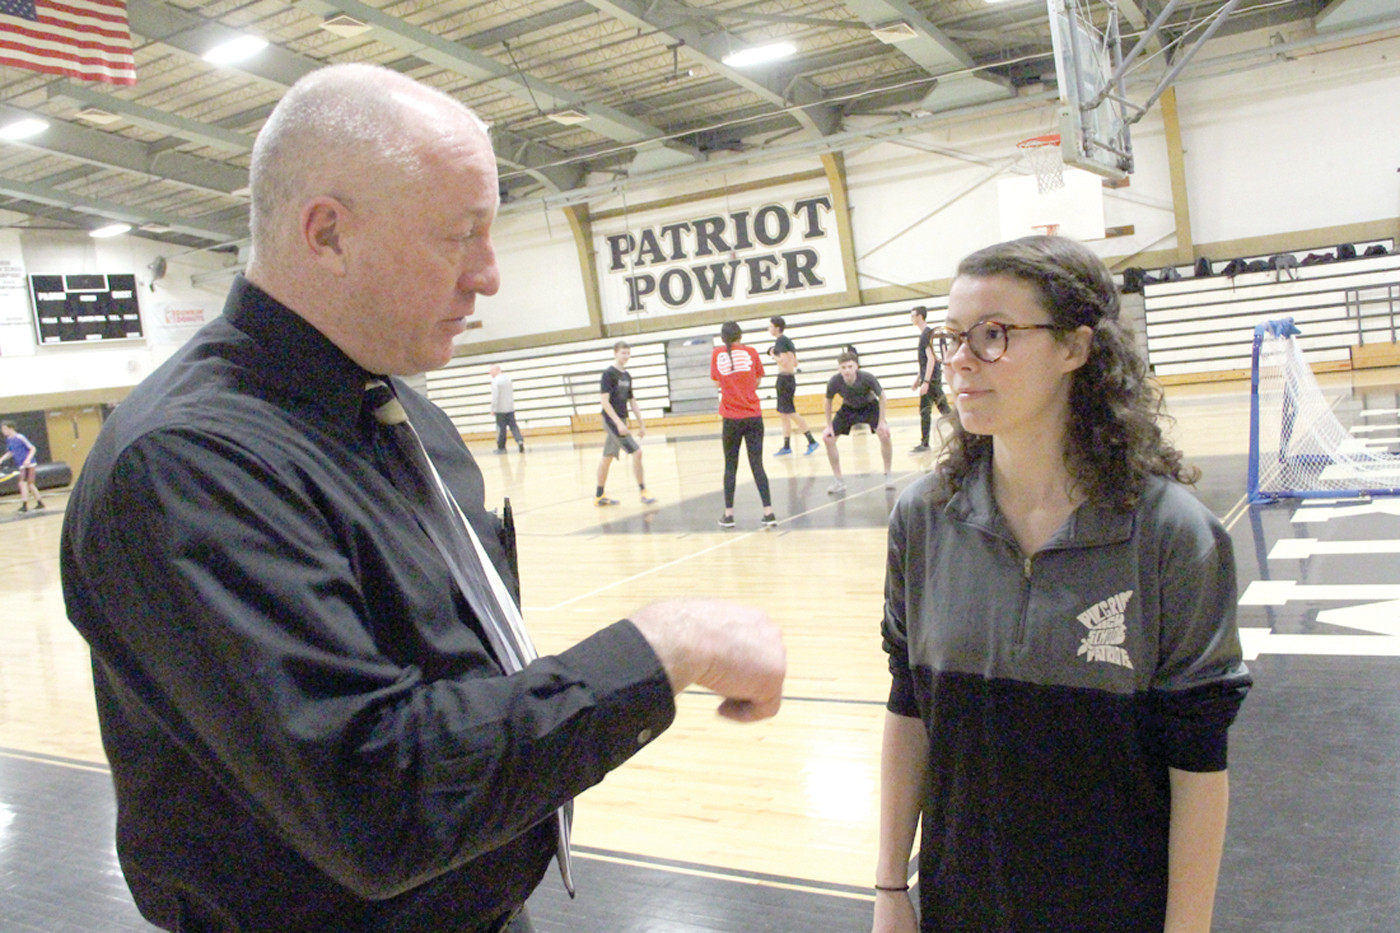 OFF COURT: Pilgrim High Principal Gerald Habershaw and Senior Class President Sophia Kate Carter talk Friday. Sophia is one of two Rhode Island student leaders to be chosen to attend the 56th annual United States Senate Youth Program this March.